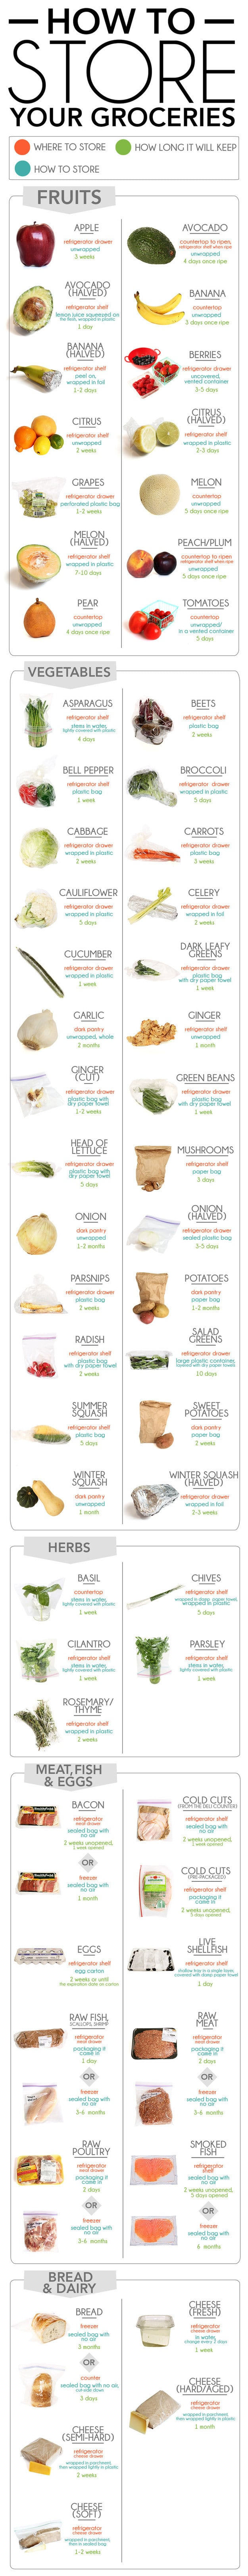 For knowing exactly how to store your groceries, and for how long.